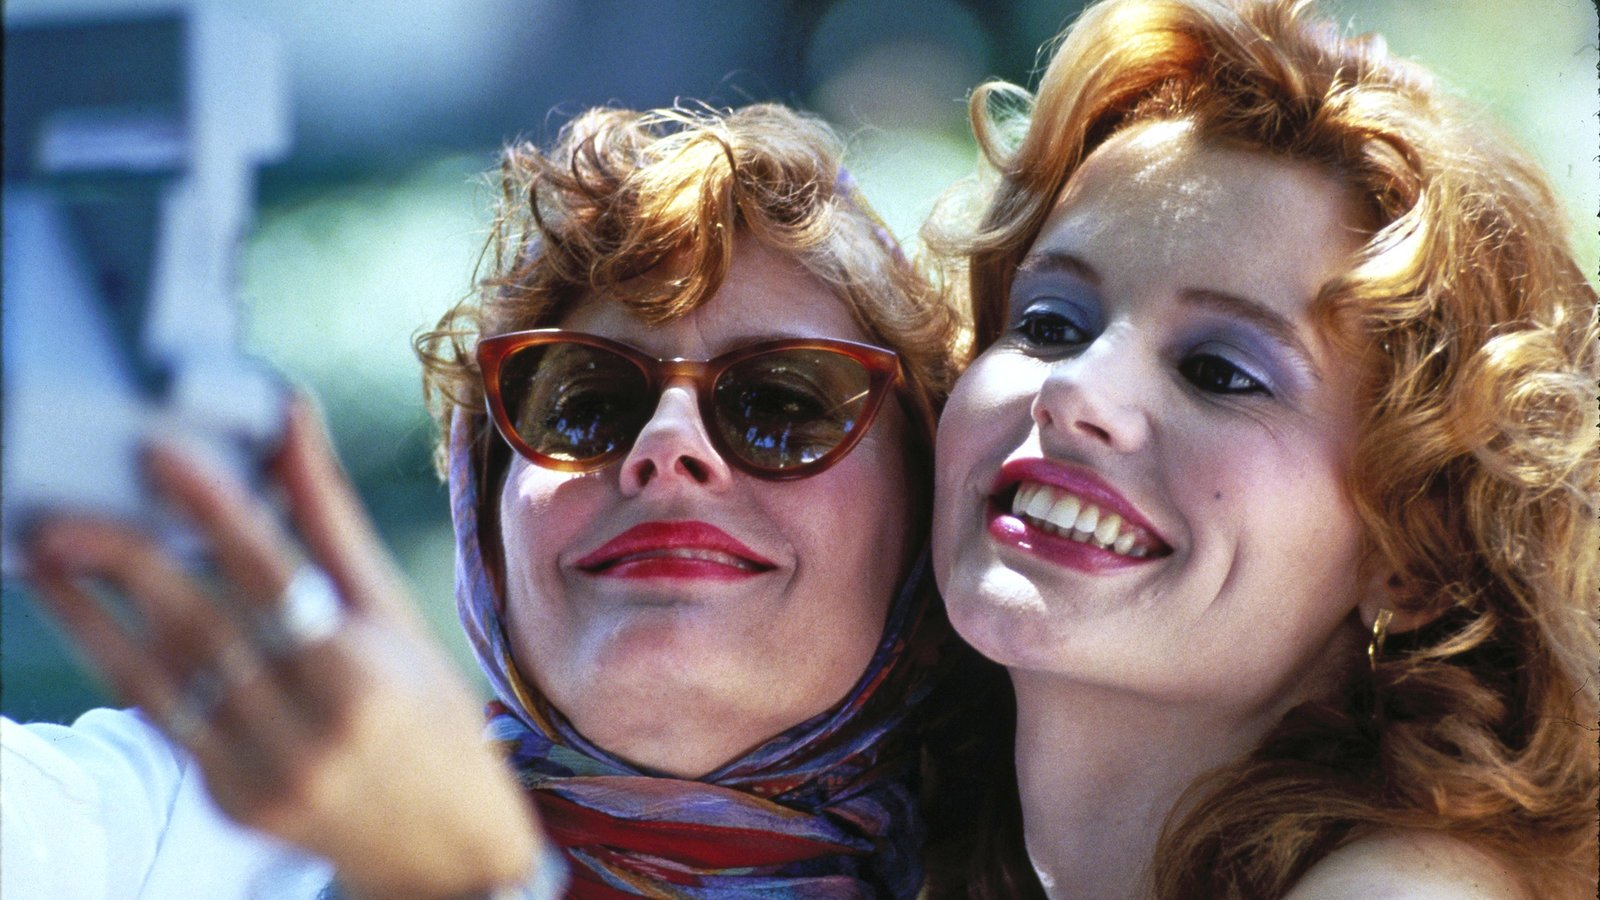 thelma-and-louise-watching-recommendation-videoSixteenByNineJumbo1600.jpg